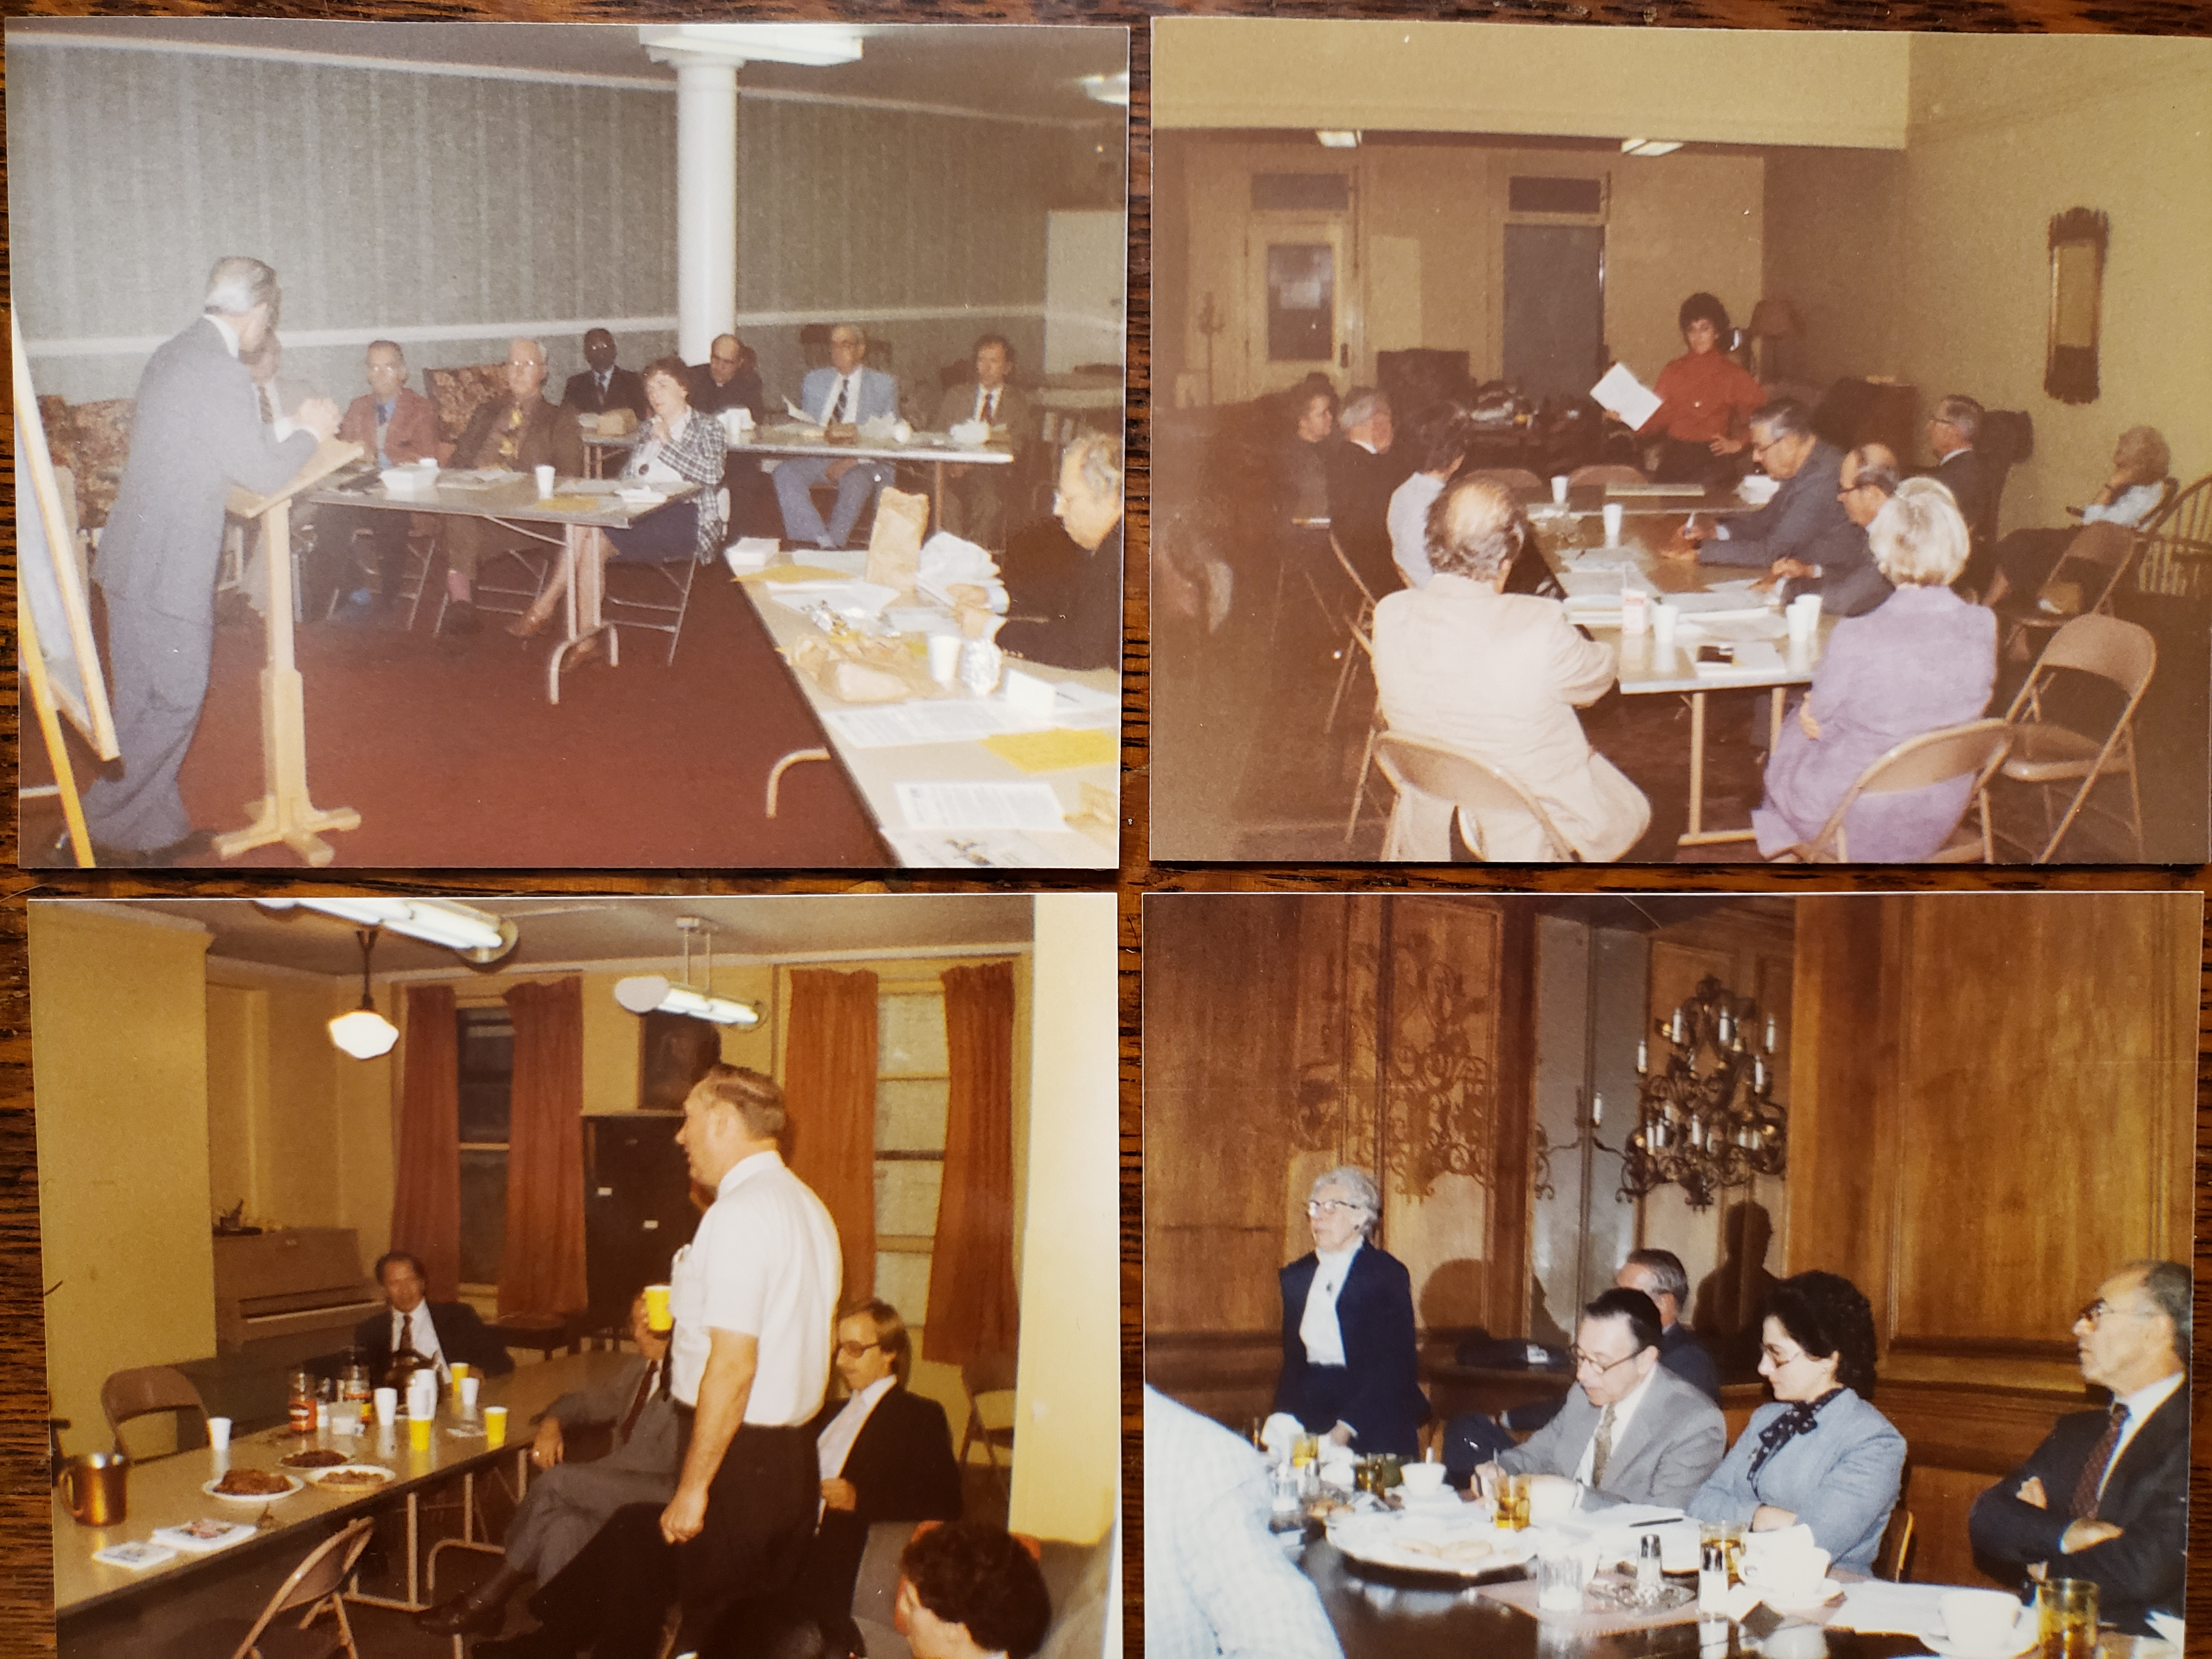 Images from meetings of the Churchman's League